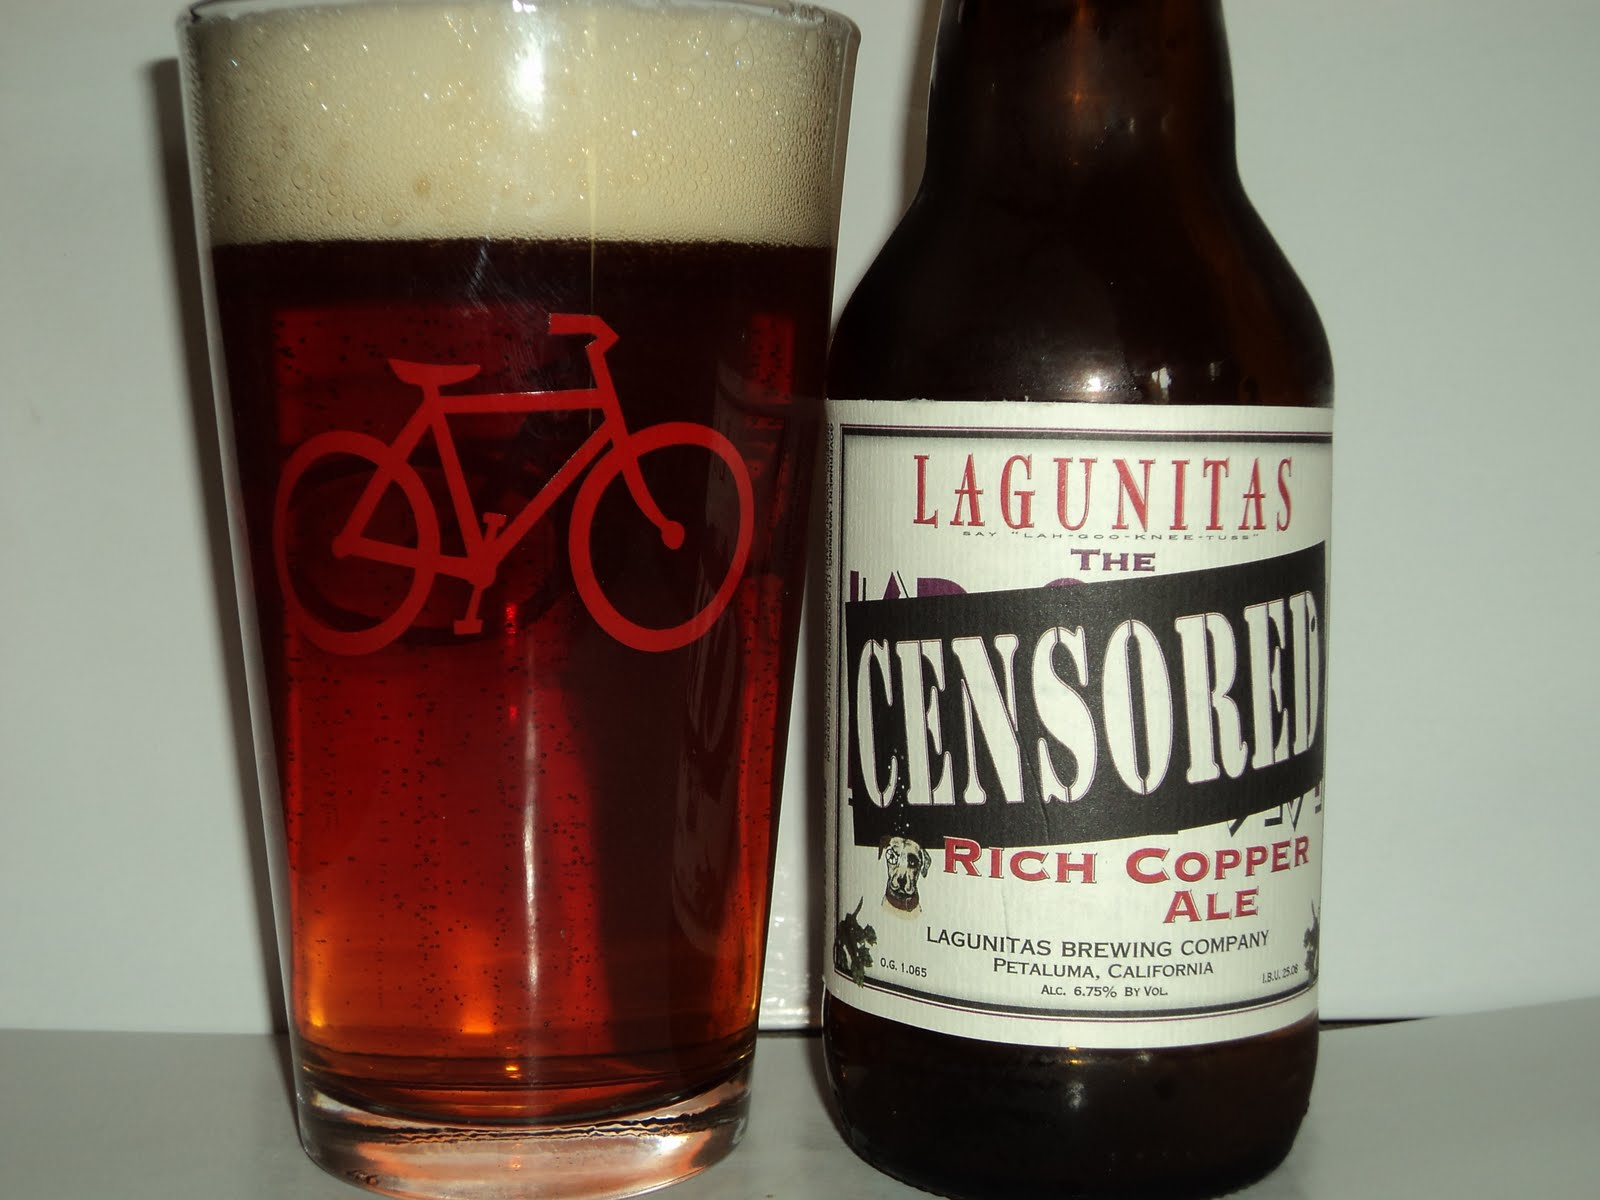 Water + Malt + Hops + Yeast = Beer: Lagunitas - The Censored